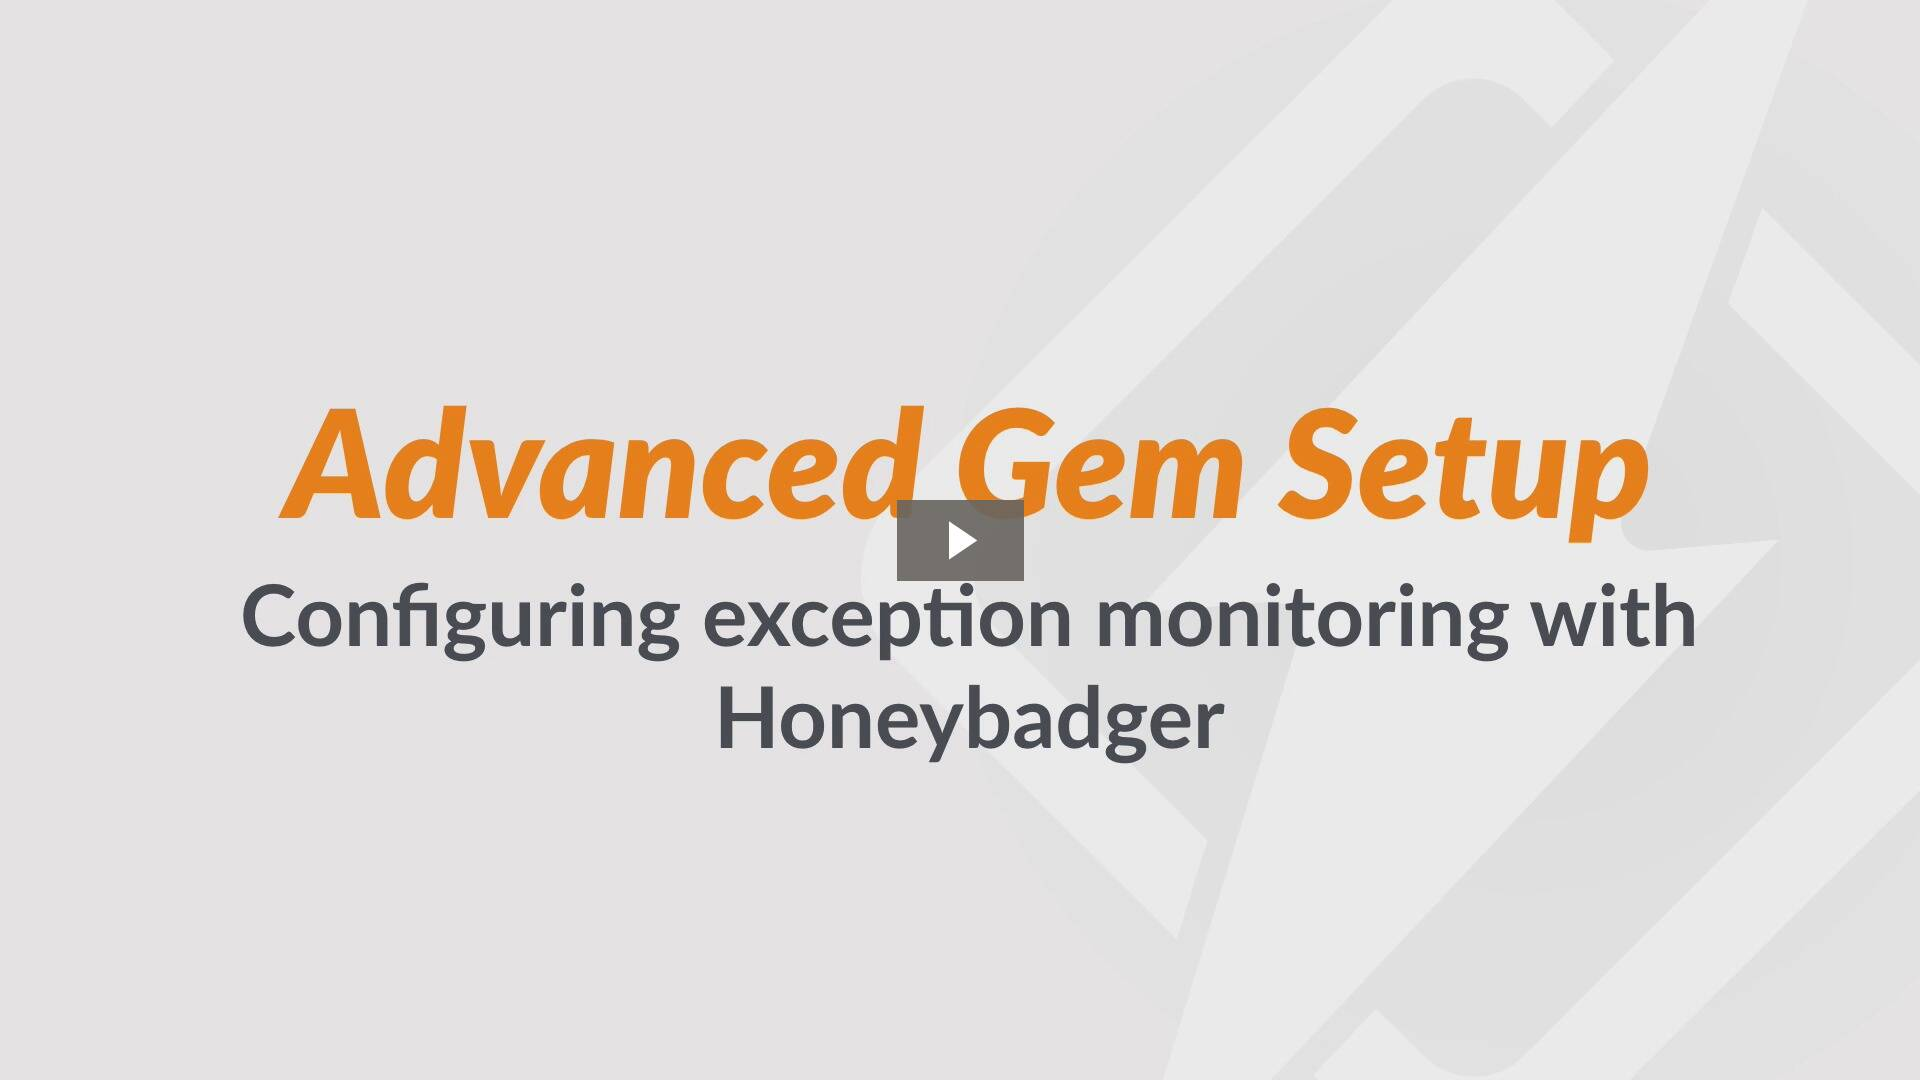 Advanced Honeybadger Gem Usage